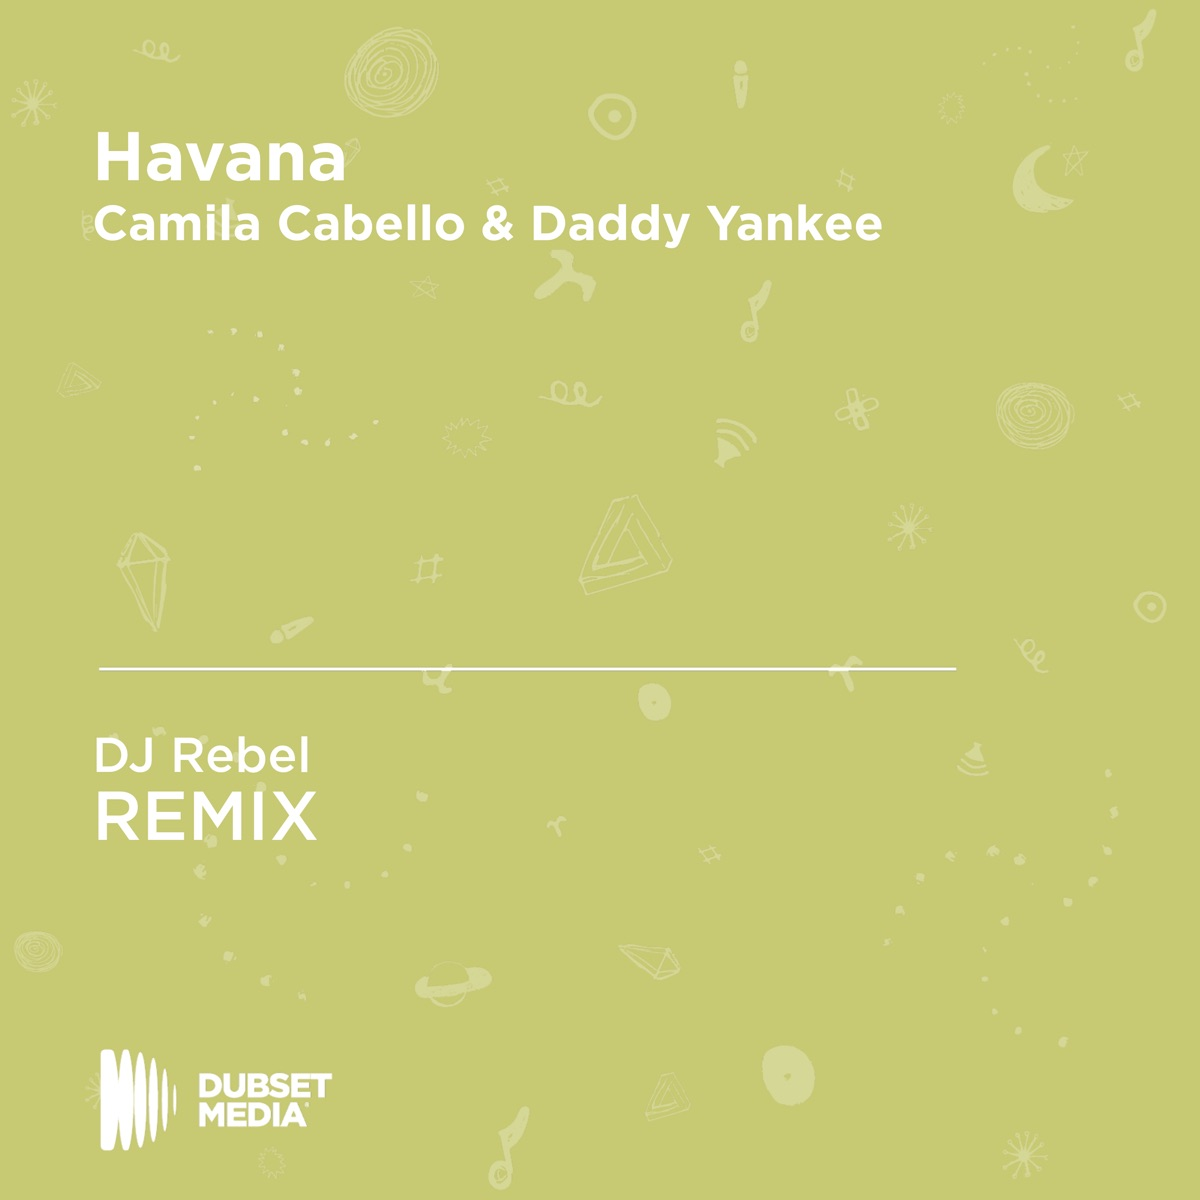 Havana Album Cover by DJ Rebel